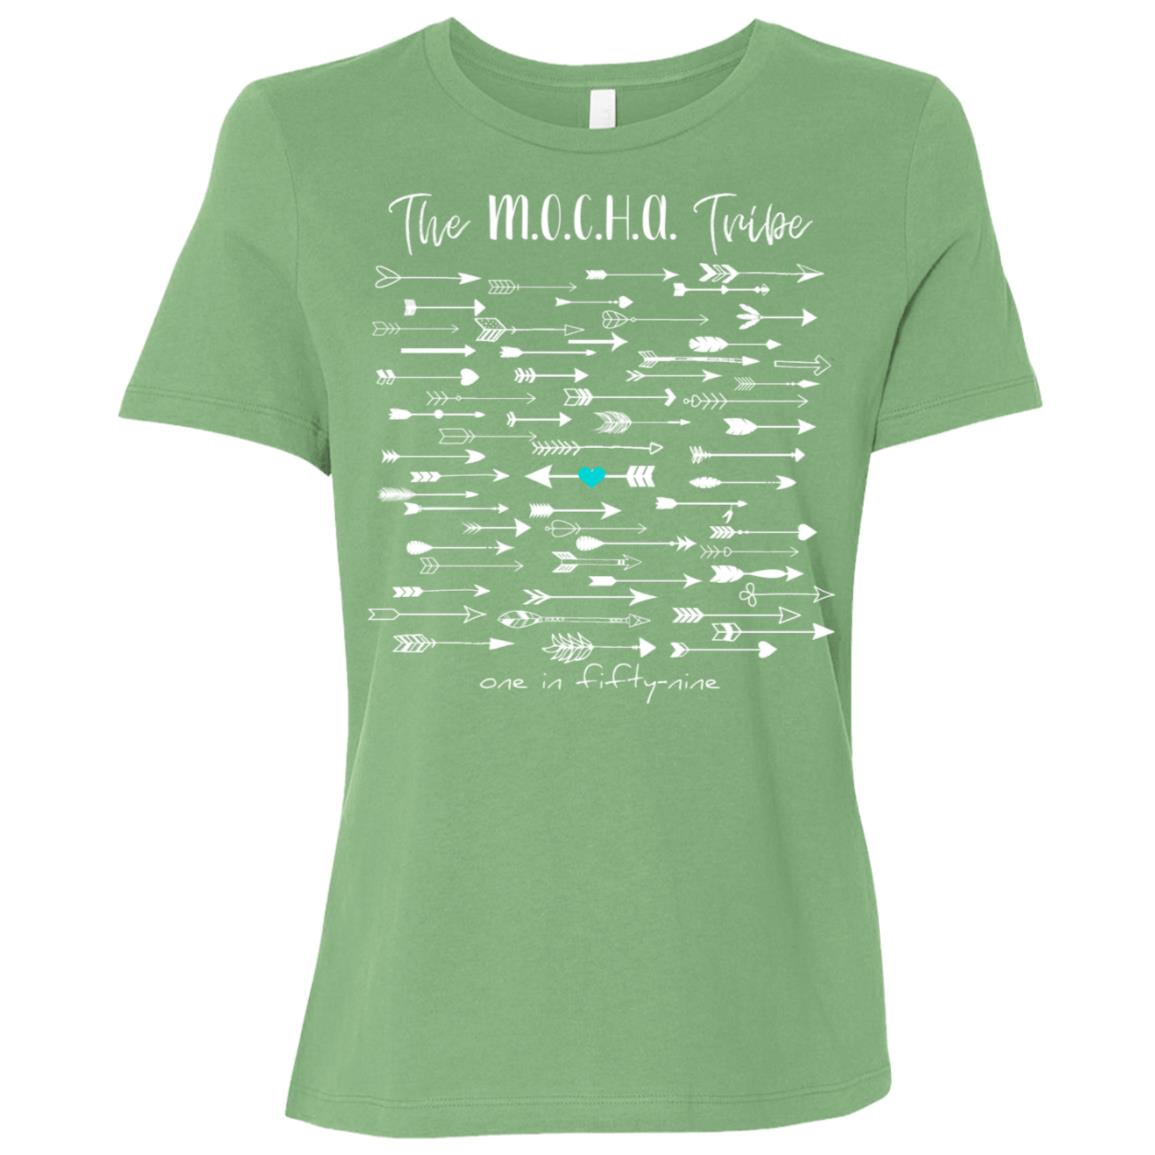 Cdc reported autism rate is 1 in 59. #nomorepuzzlepieces-15 Women Short Sleeve T-Shirt